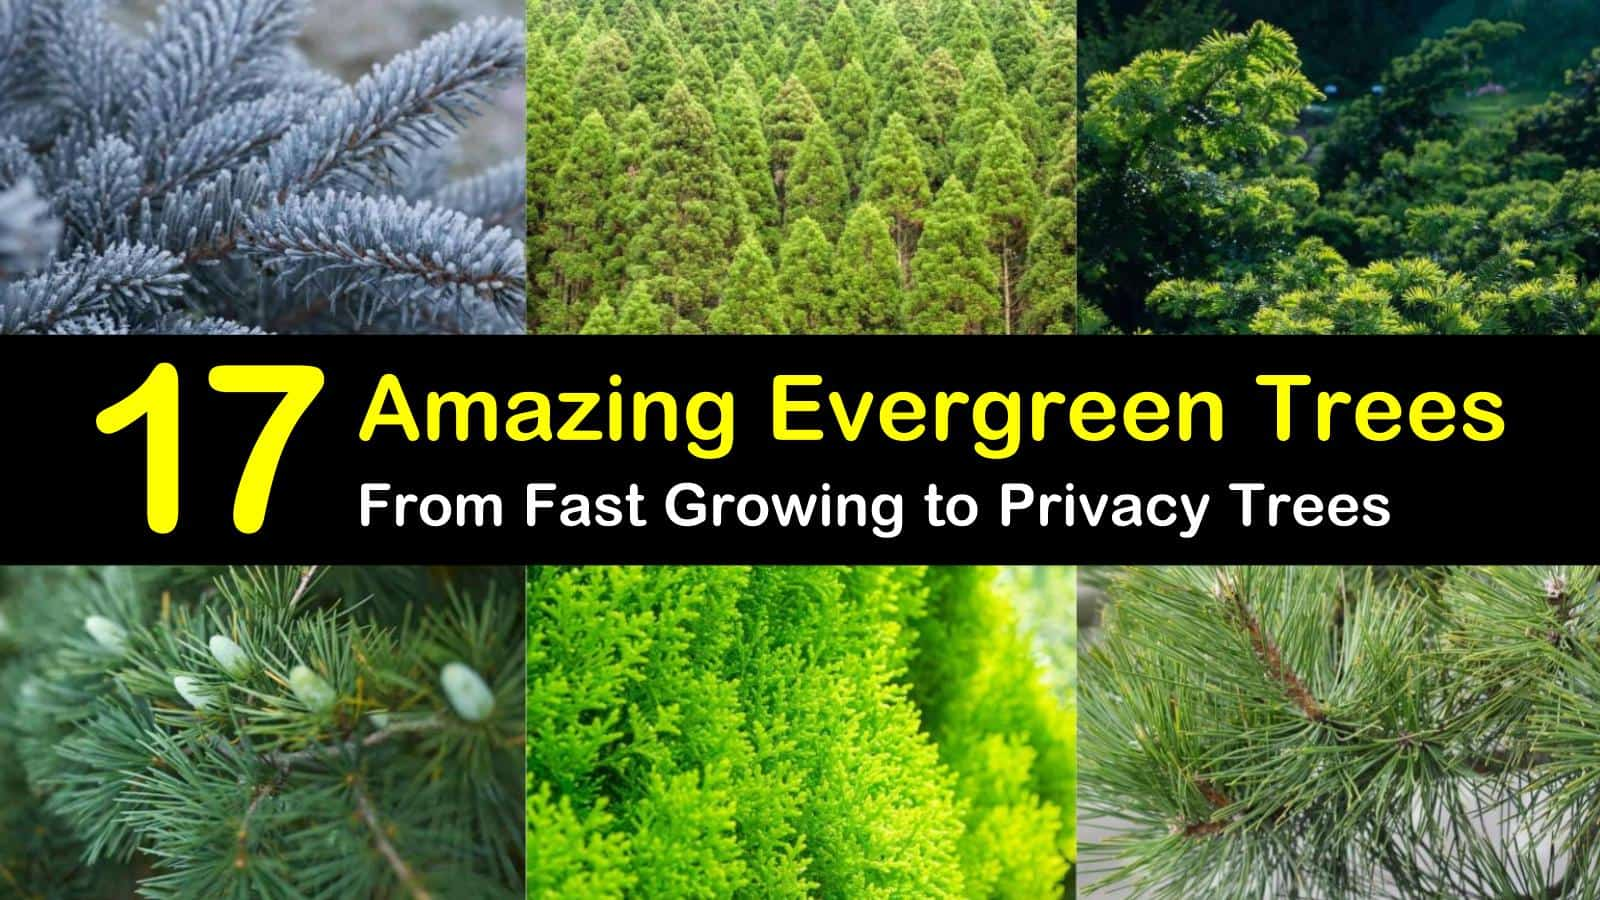 evergreen trees titleimg1